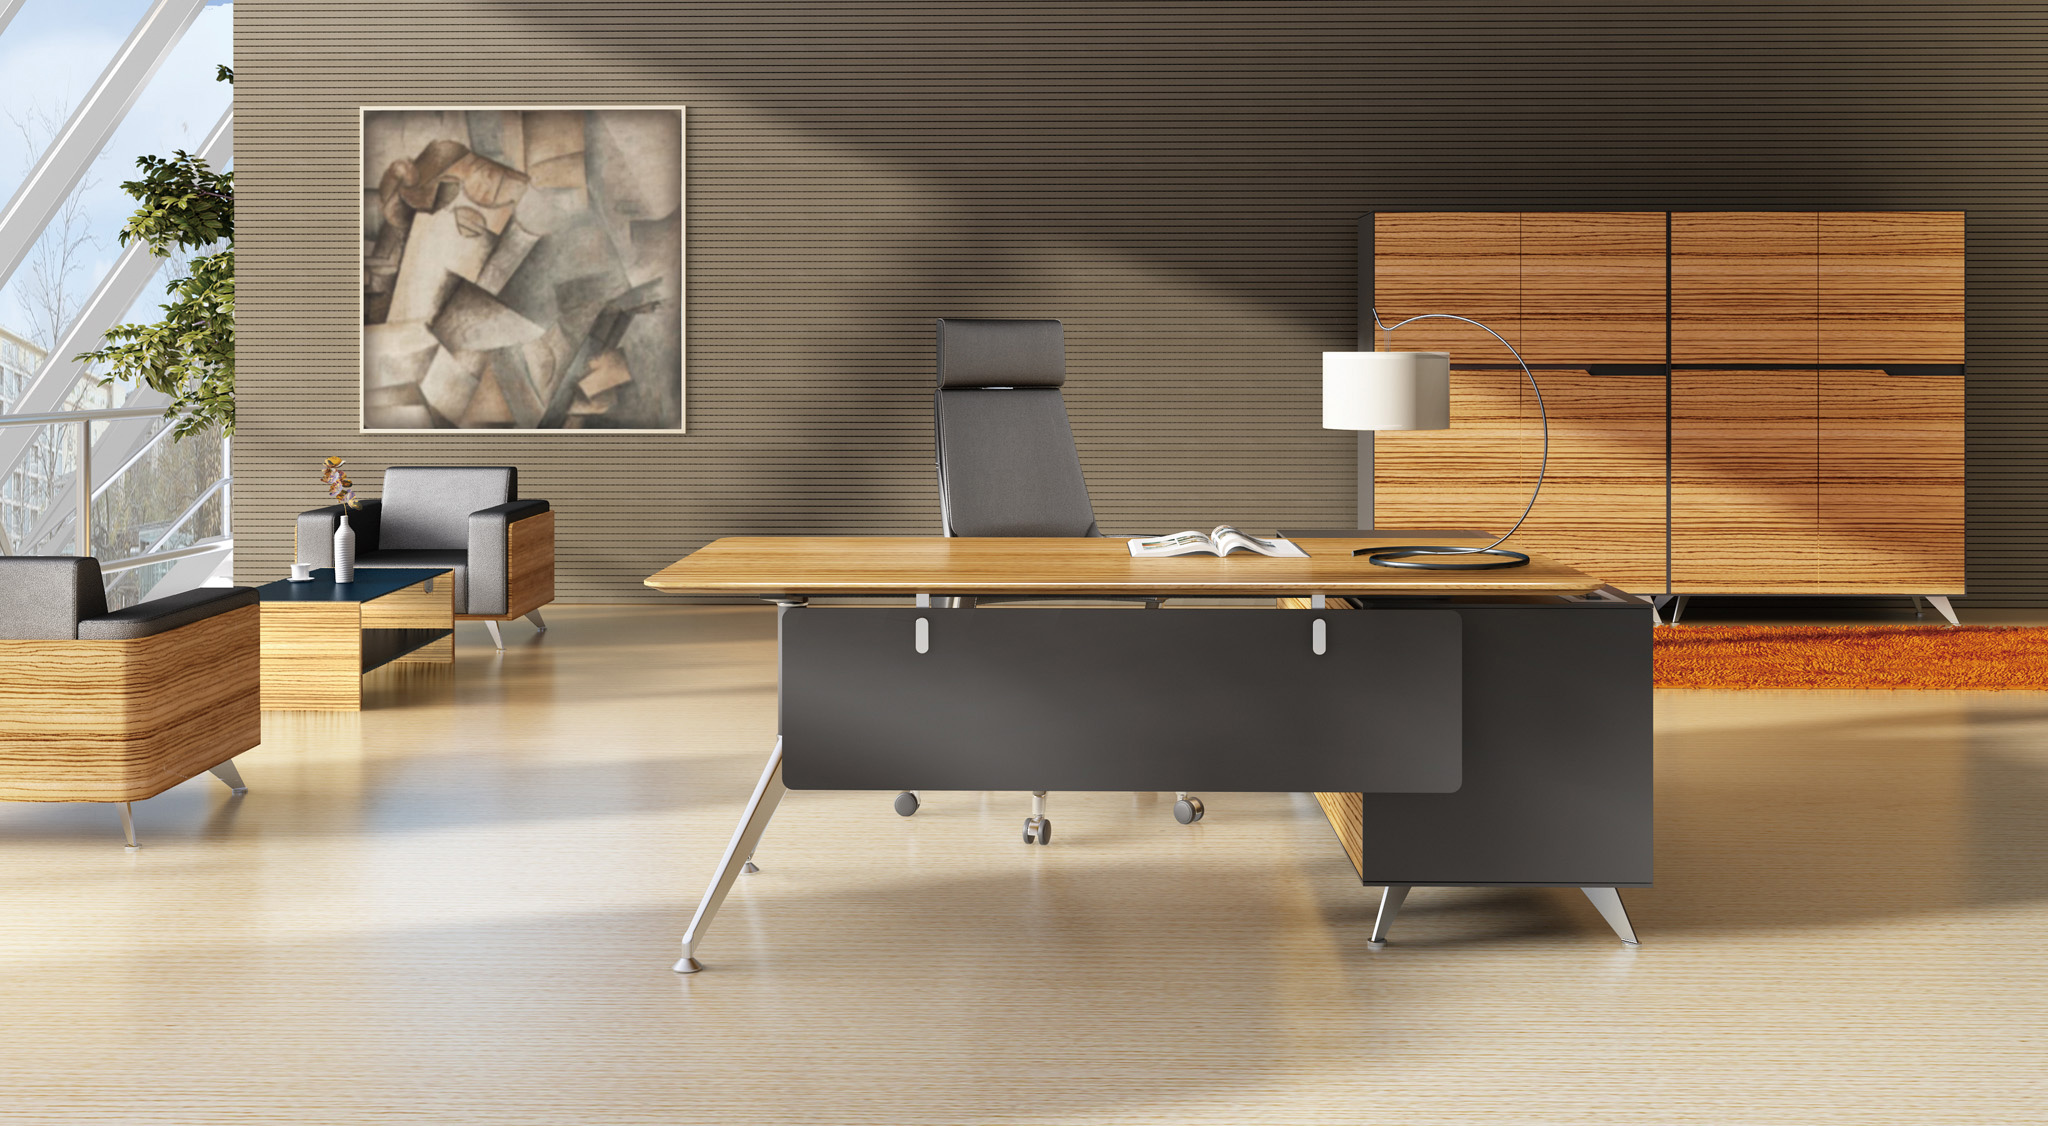 timber office furniture. DTC Damping Hinge, Timber Veneer Top, Shark Nose Edging, Aluminium Feet. Buffet Comes With 2 Drawers \u0026 Doors, Soft Closing, Lockable Drawers. Office Furniture E